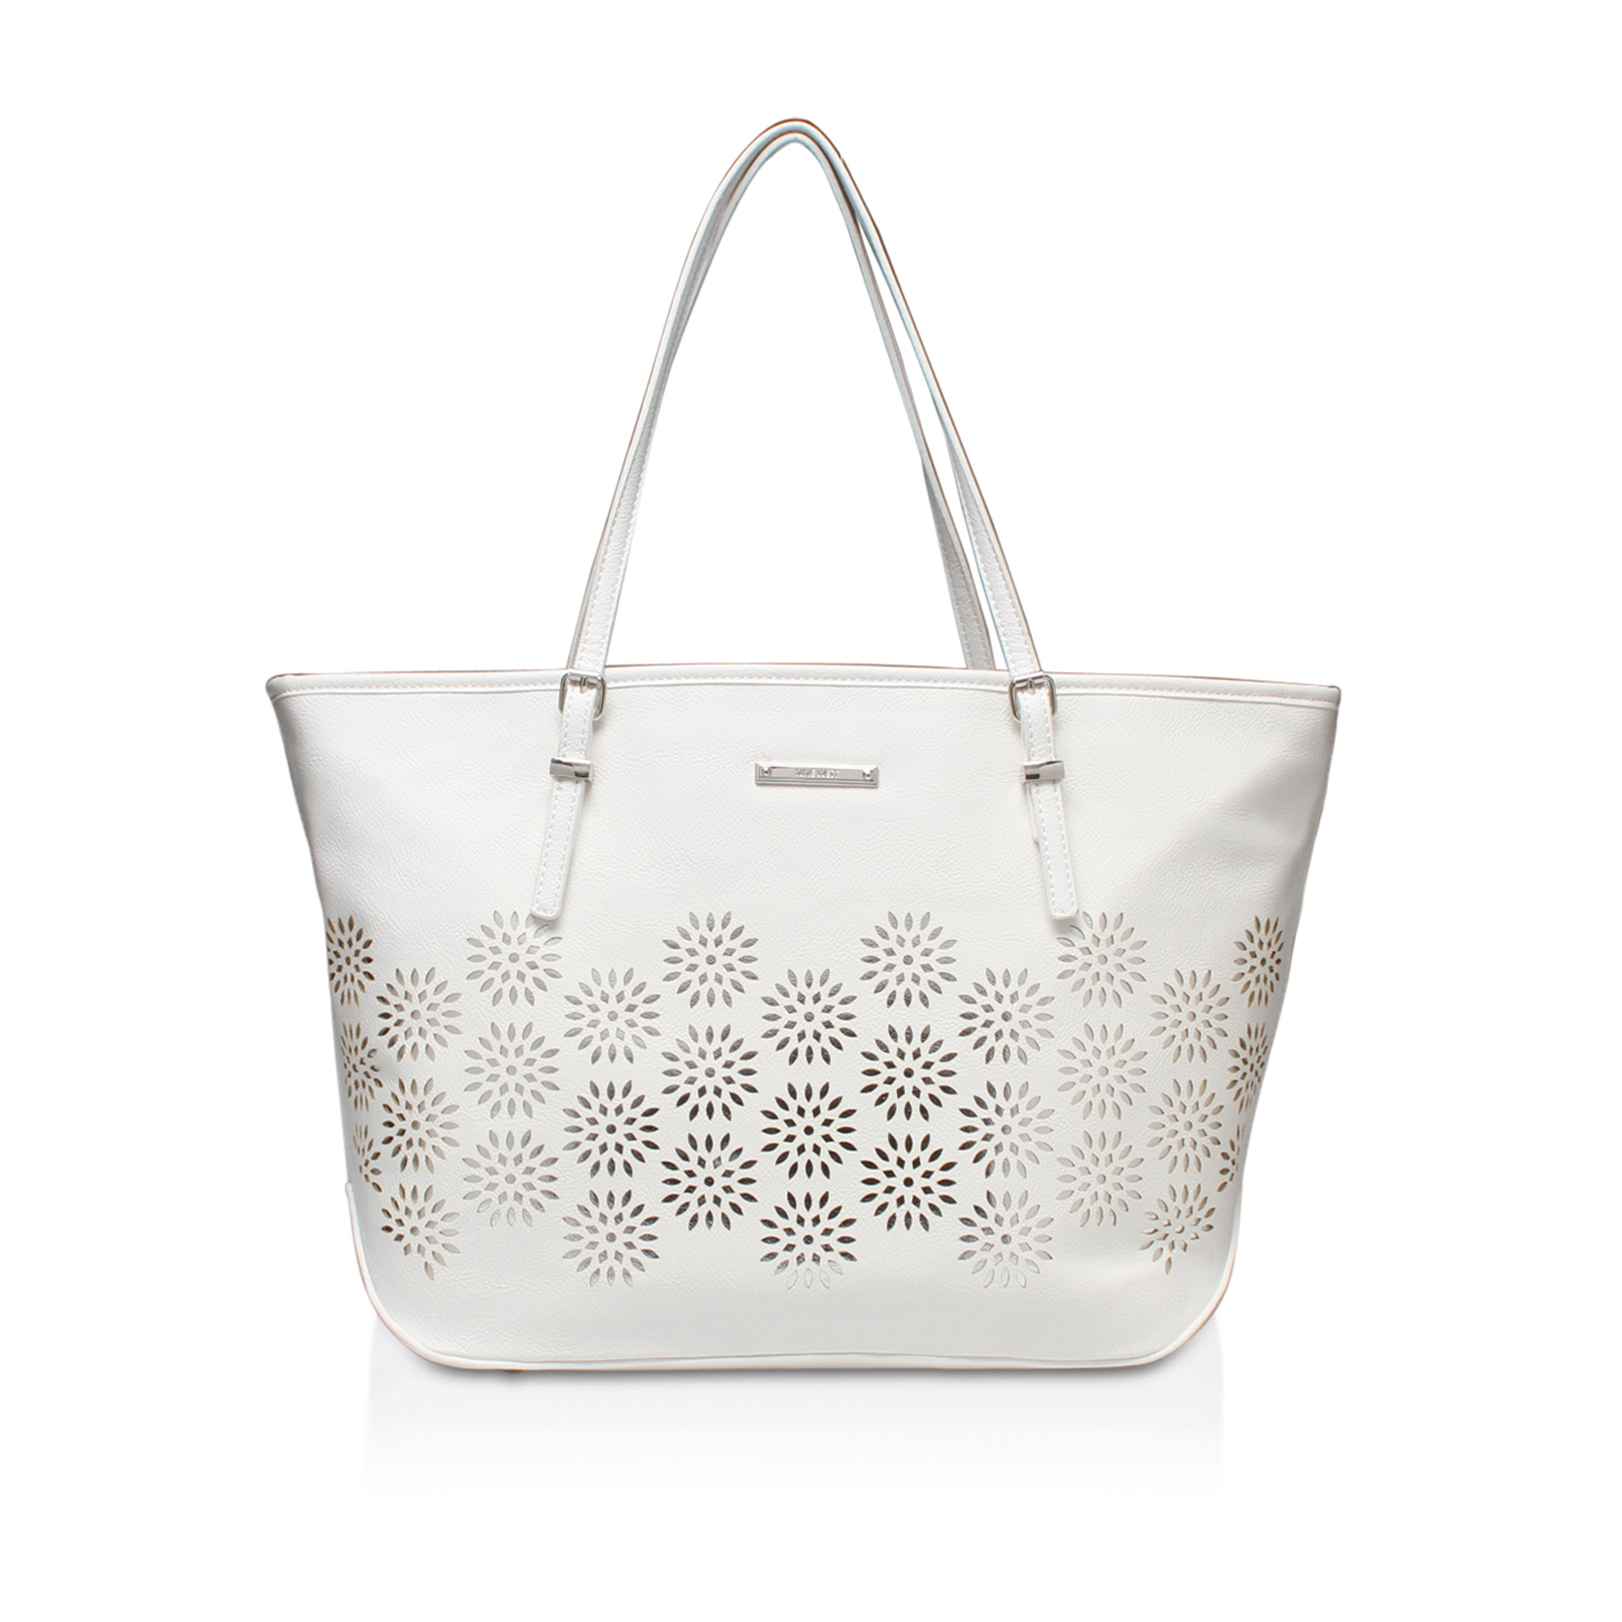 IT GIRL TOTE LG